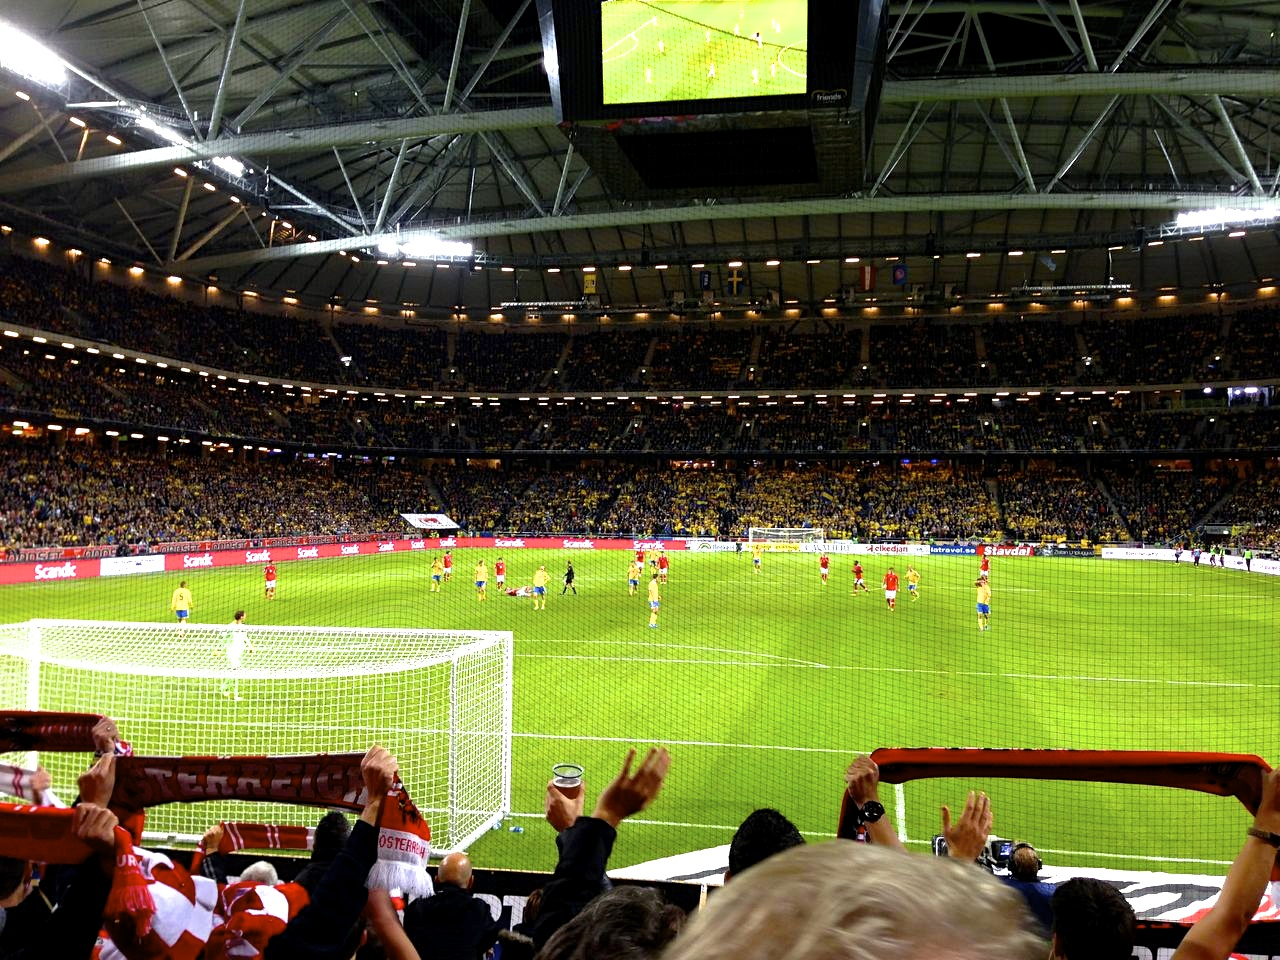 sweden vs austria for the world cup qualifies at the friends arena in solna. what a nice stadium and great atmosphere